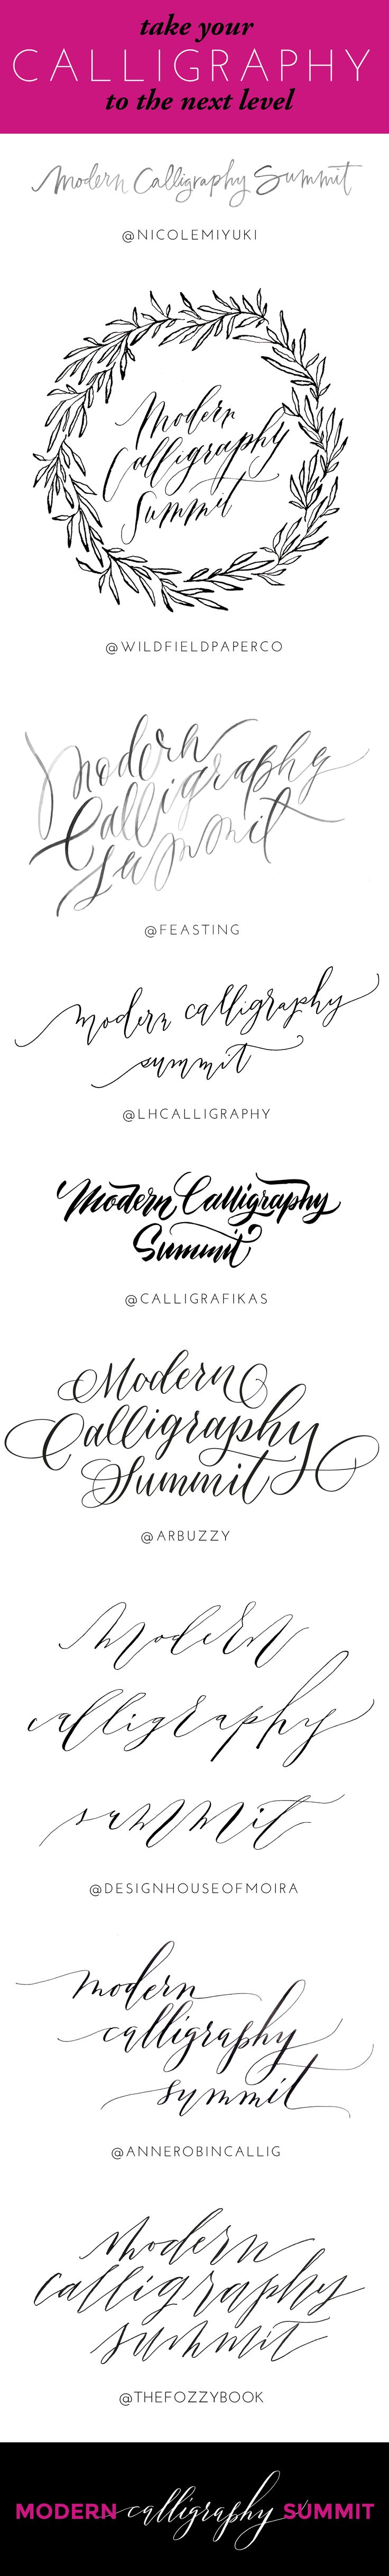 82 best images about modern calligraphy on pinterest Where to learn calligraphy